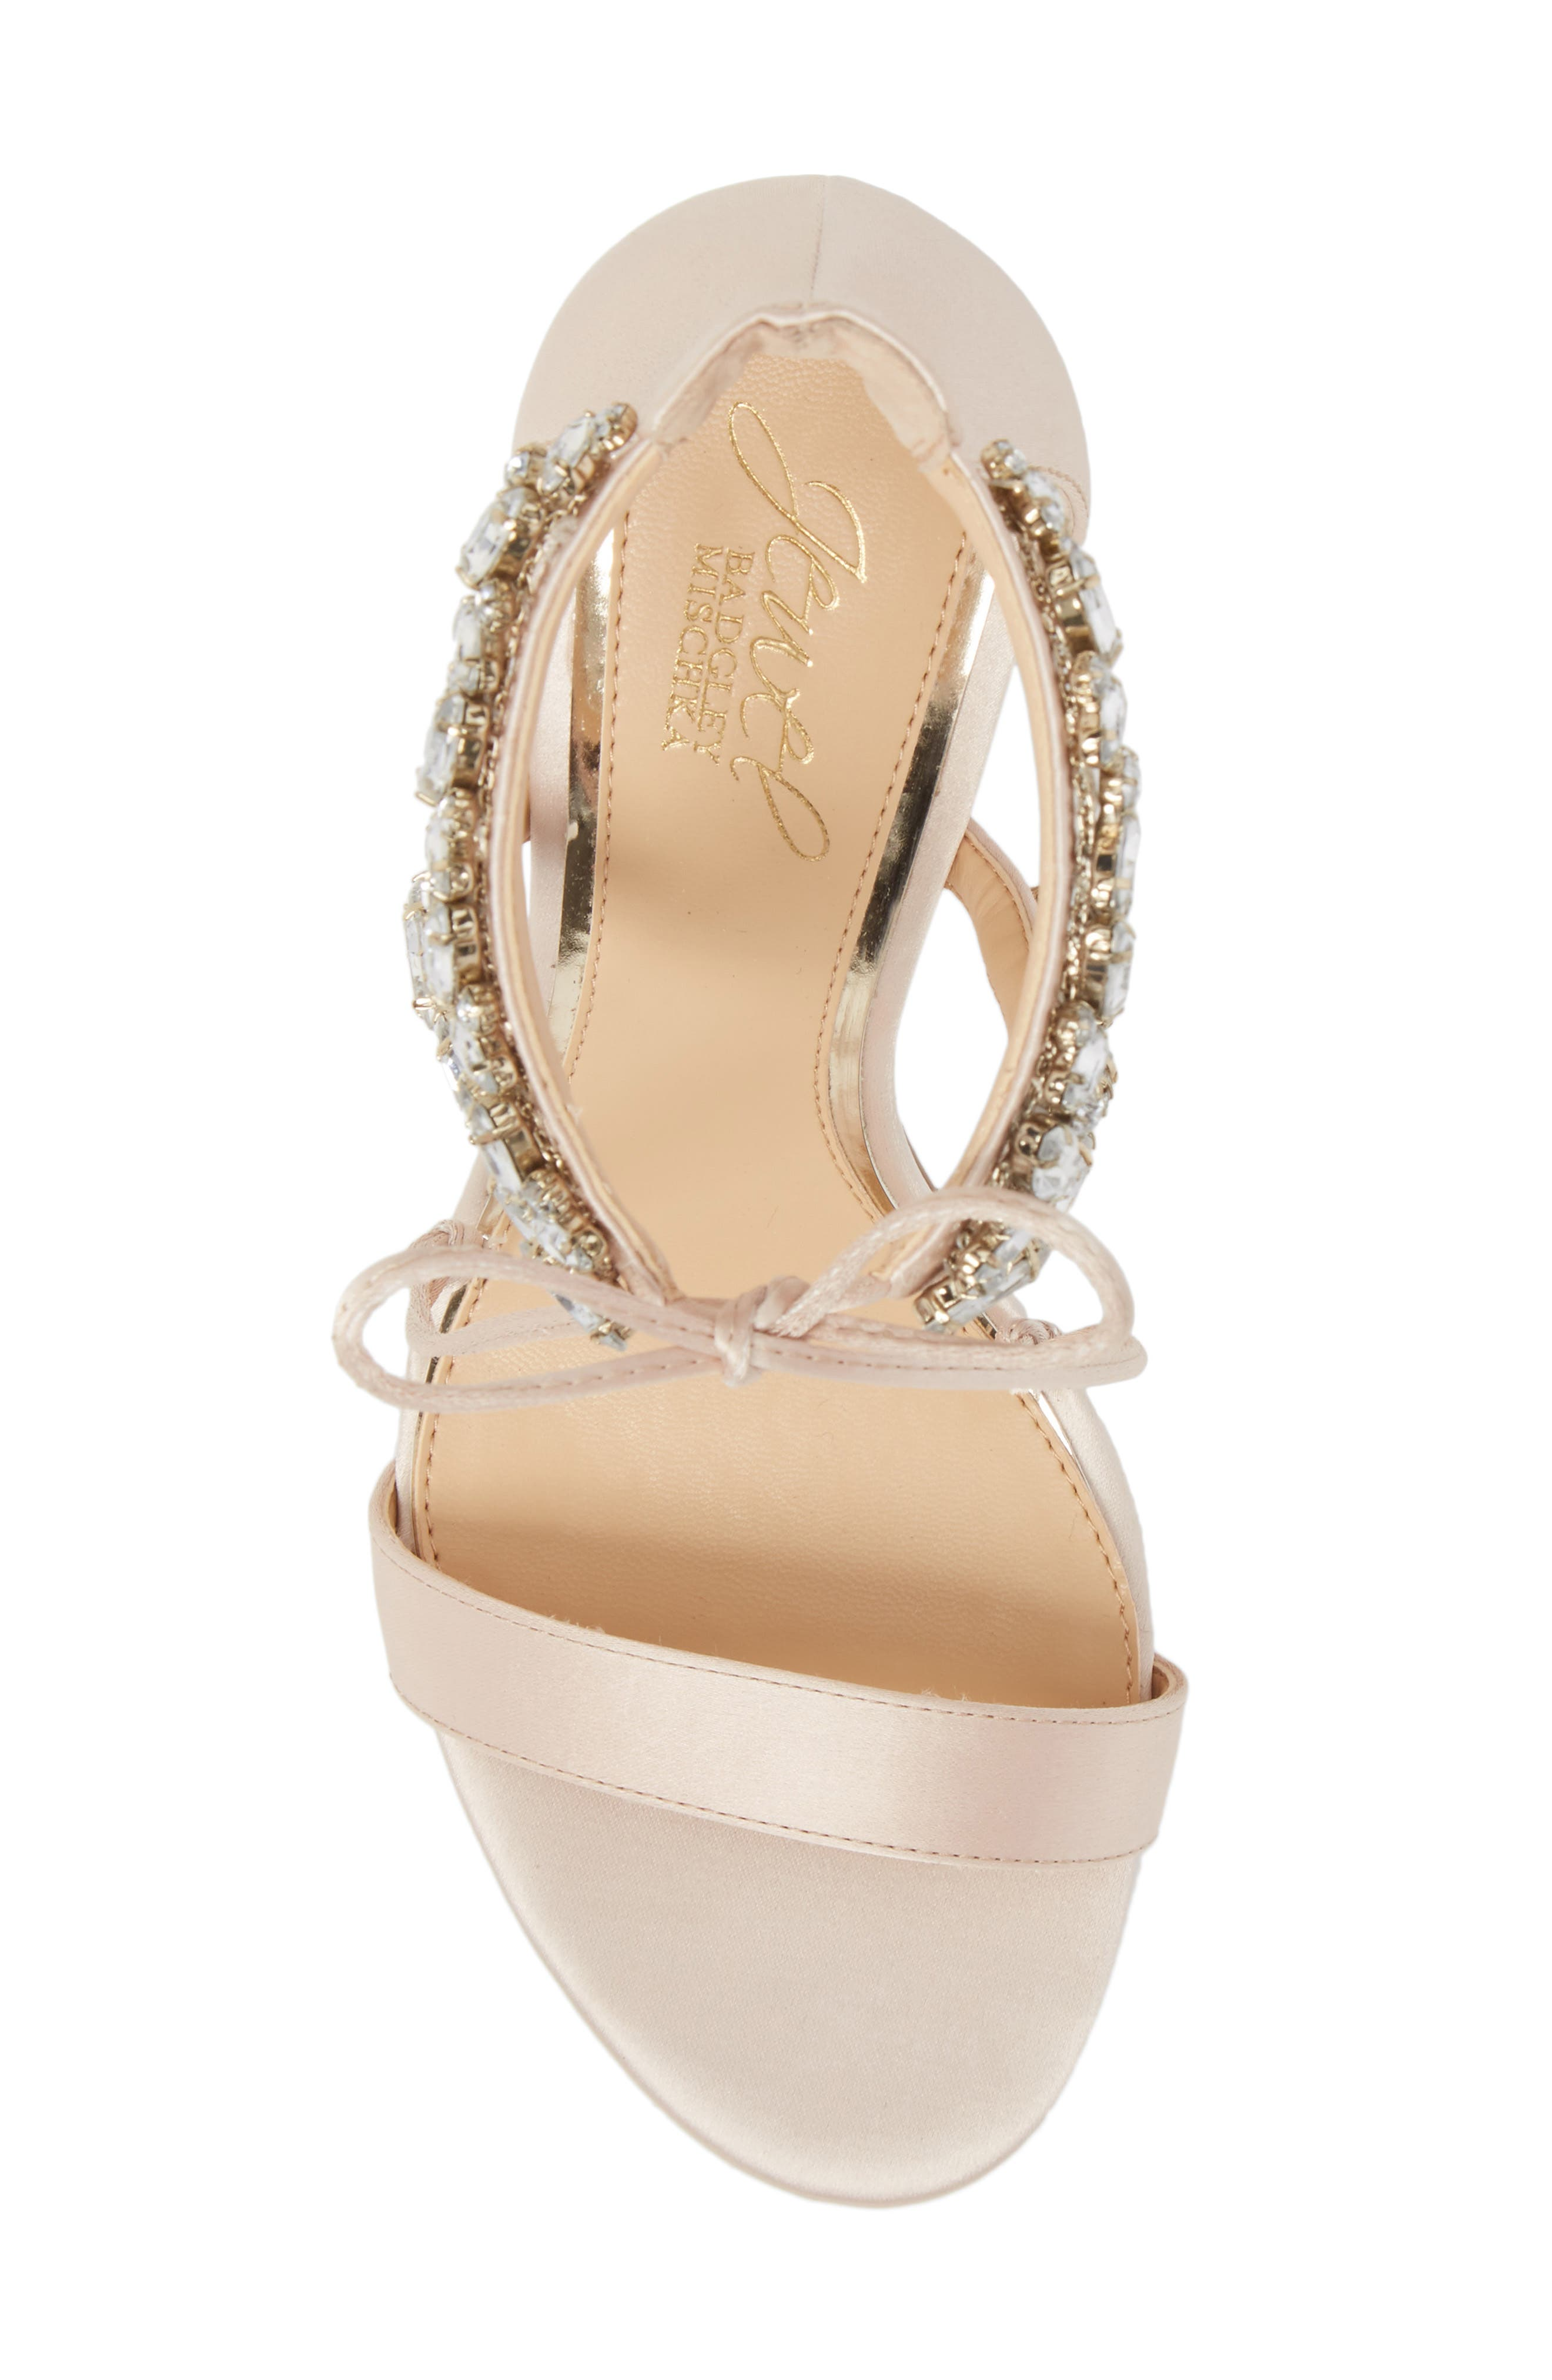 JEWEL BADGLEY MISCHKA,                             Thamar Embellished Sandal,                             Alternate thumbnail 5, color,                             CHAMPAGNE SATIN